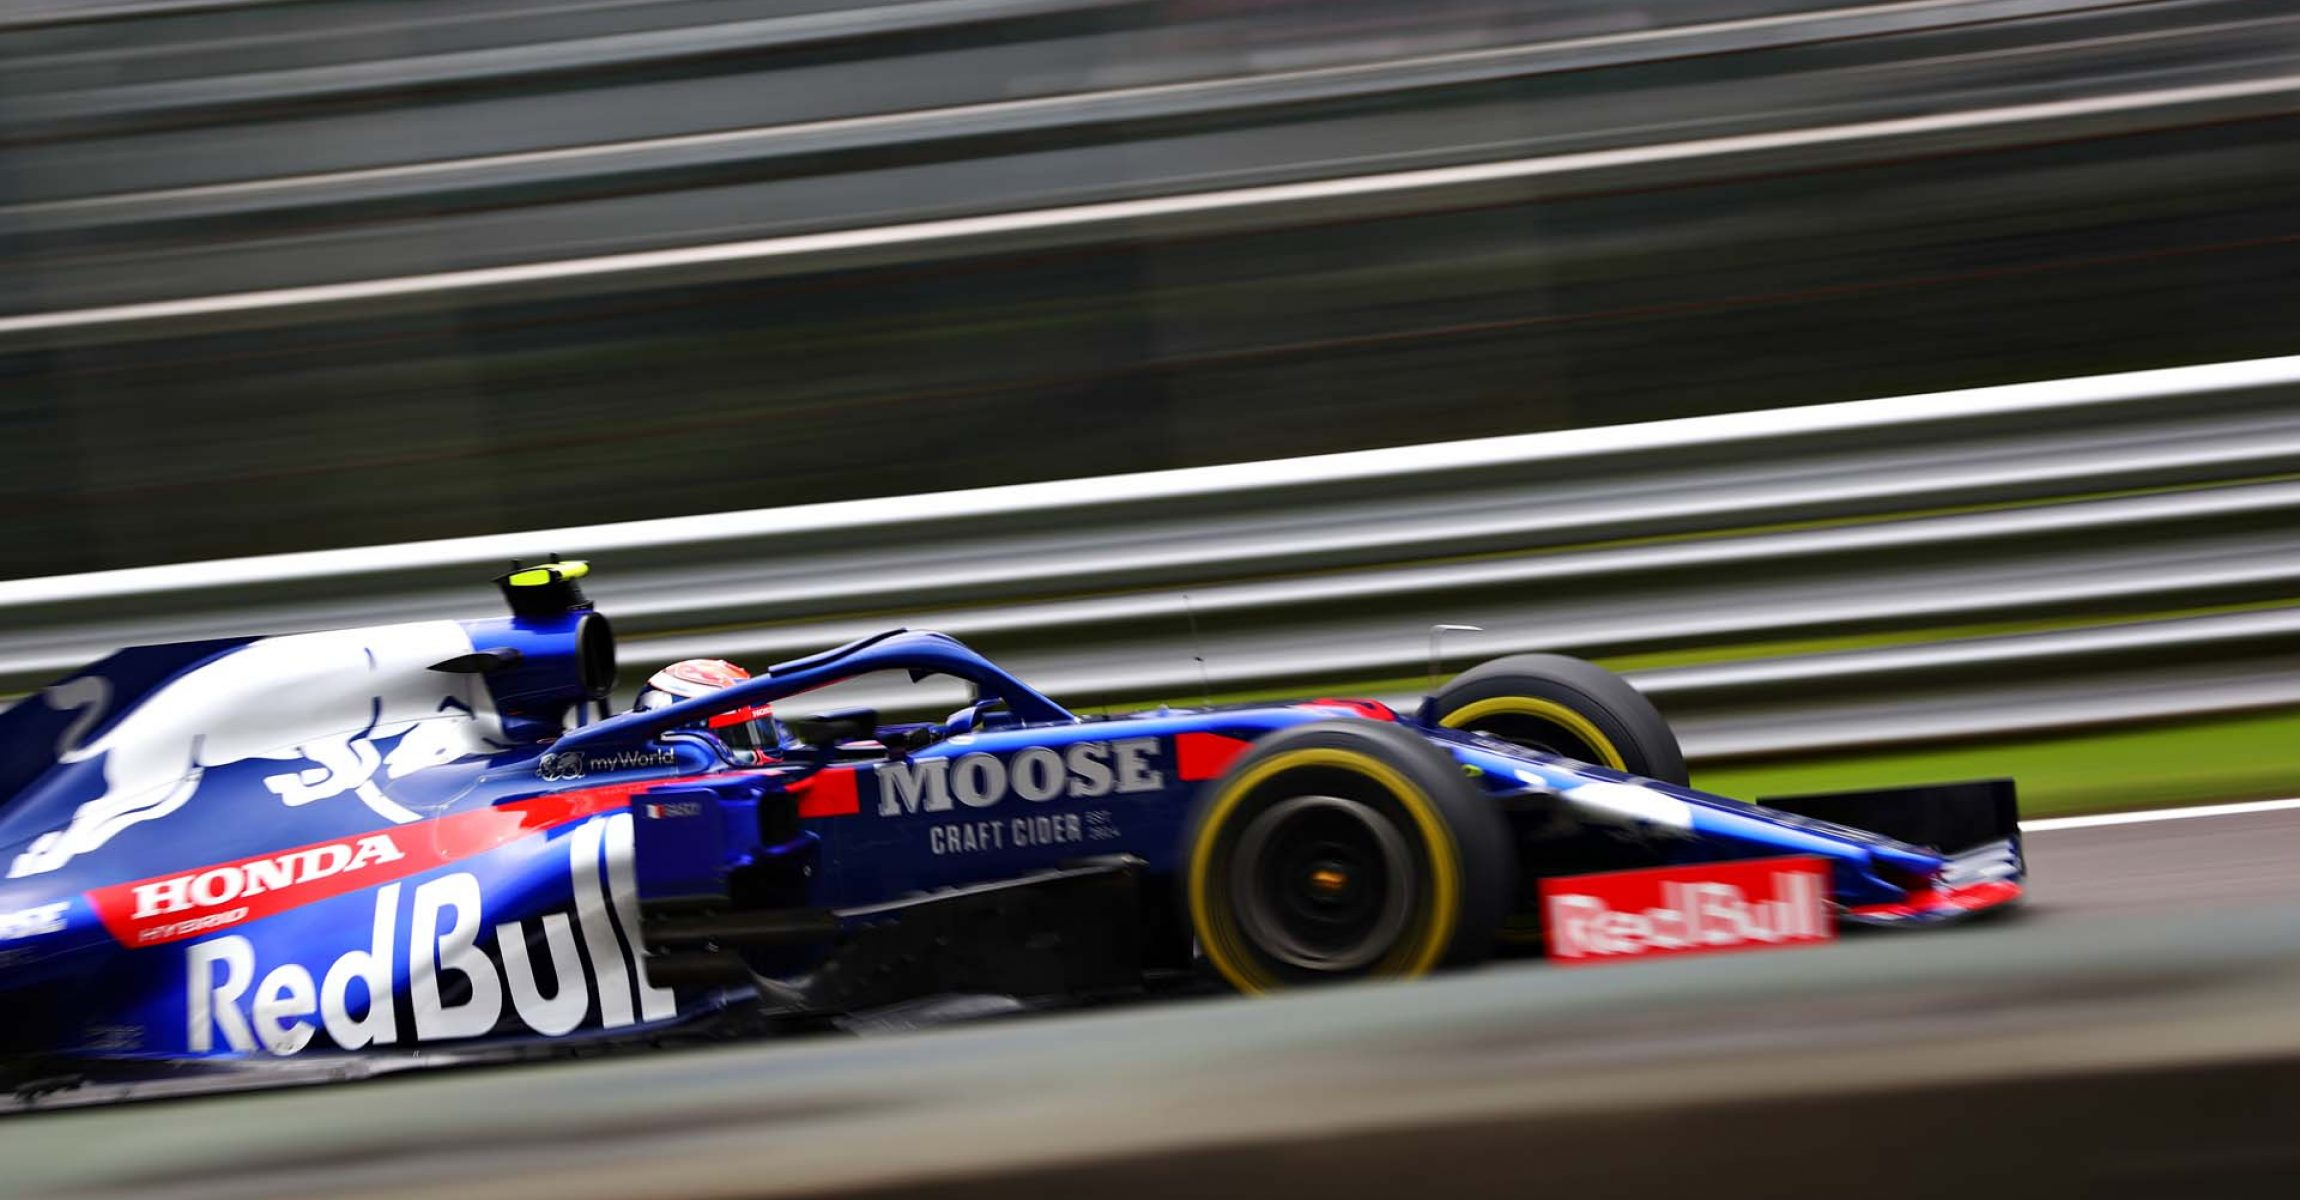 MONZA, ITALY - SEPTEMBER 06: Pierre Gasly of France driving the (10) Scuderia Toro Rosso STR14 Honda on track during practice for the F1 Grand Prix of Italy at Autodromo di Monza on September 06, 2019 in Monza, Italy. (Photo by Dan Istitene/Getty Images) // Getty Images / Red Bull Content Pool  // AP-21G69ENJH1W11 // Usage for editorial use only //